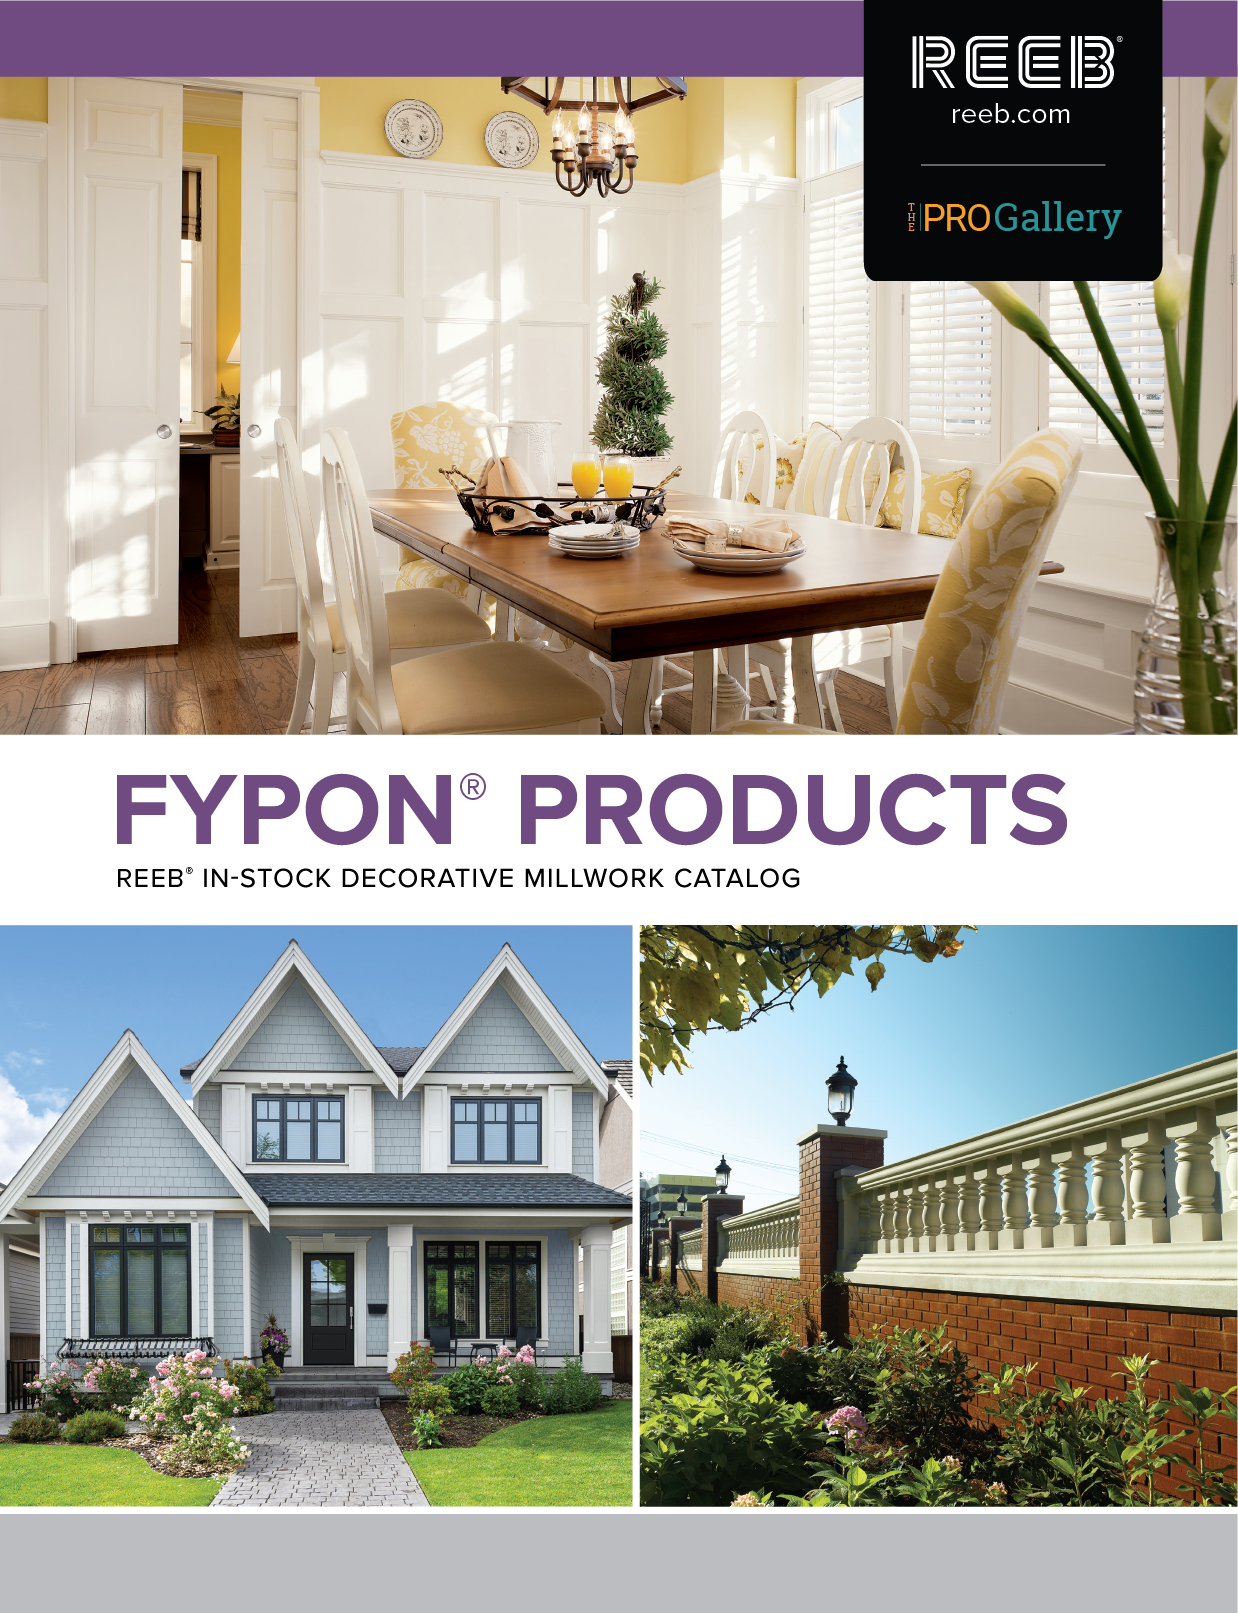 Fypon Decorative Millwork